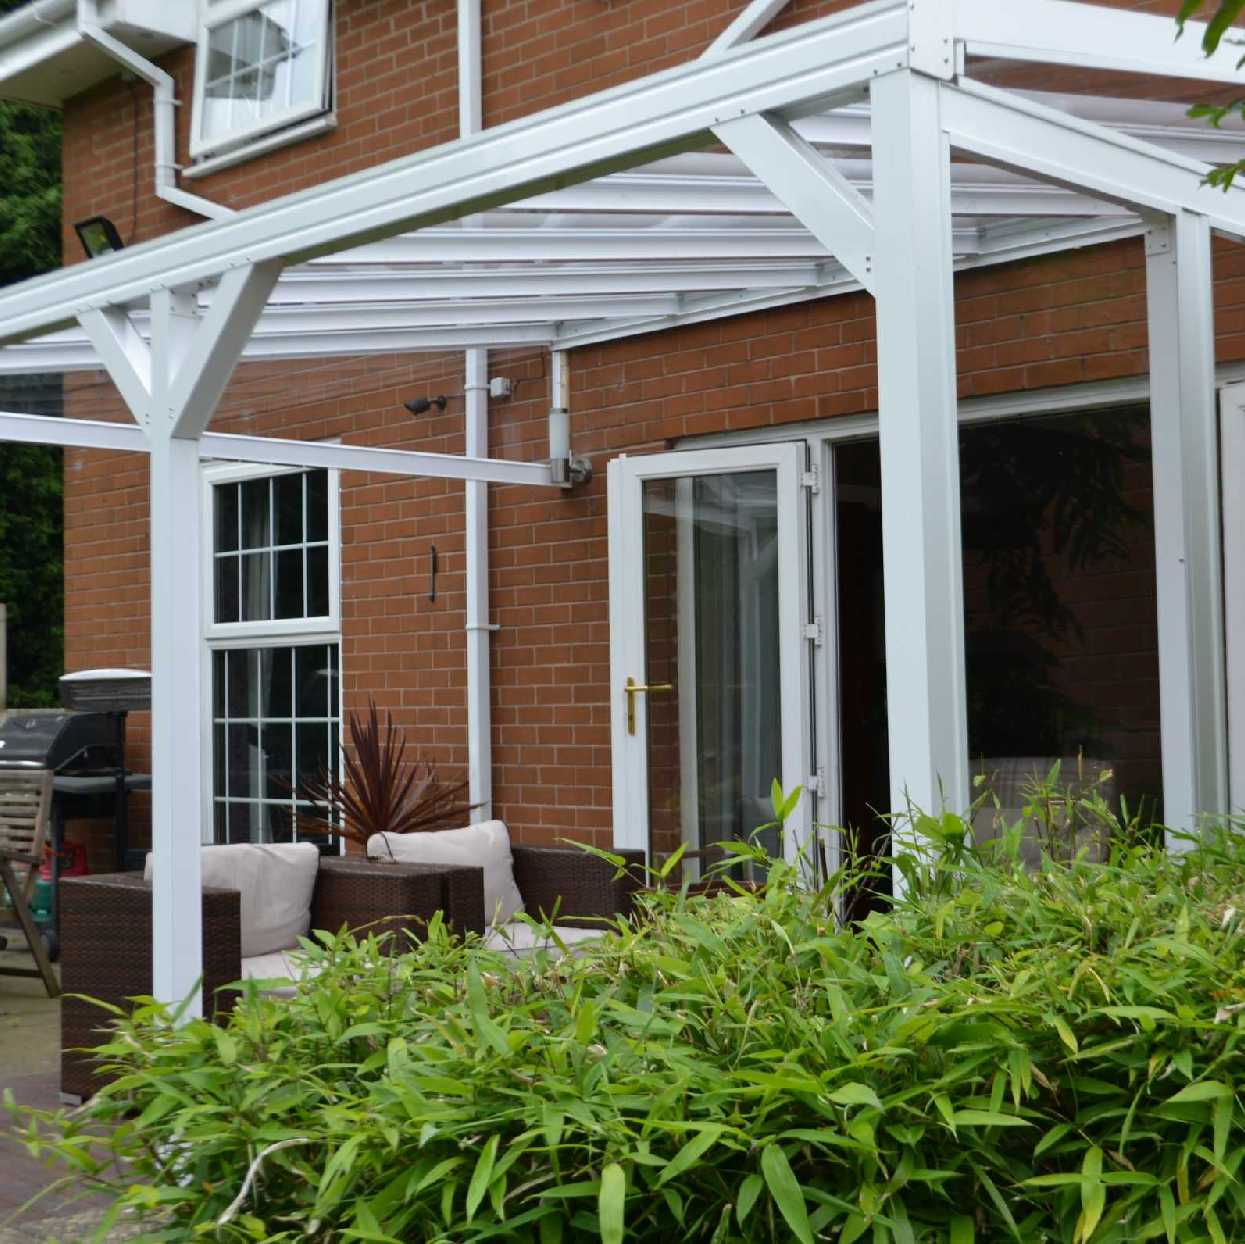 Omega Smart Lean-To Canopy with 6mm Glass Clear Plate Polycarbonate Glazing - 8.4m (W) x 3.5m (P), (4) Supporting Posts from Omega Build